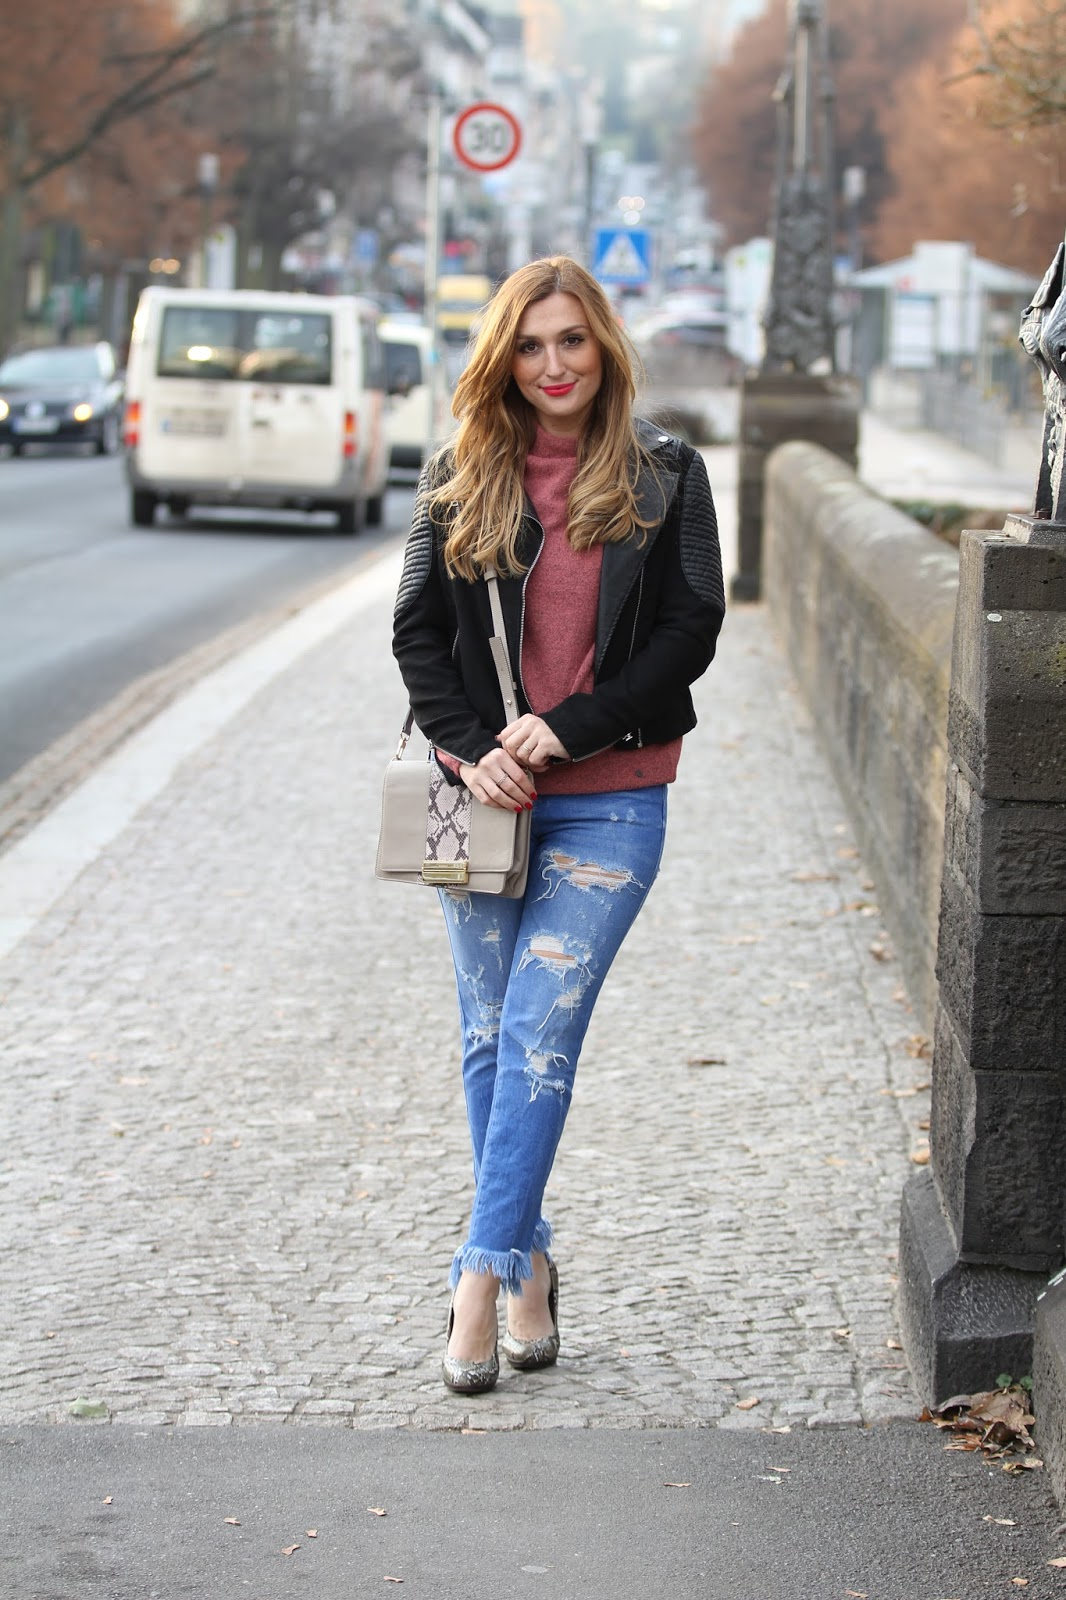 Blogger-aus-Deutschland-deutsche-Fashionblogger-Zara-Hose-On-done-look-Streetfashion-Blogger-aus-Deutschland